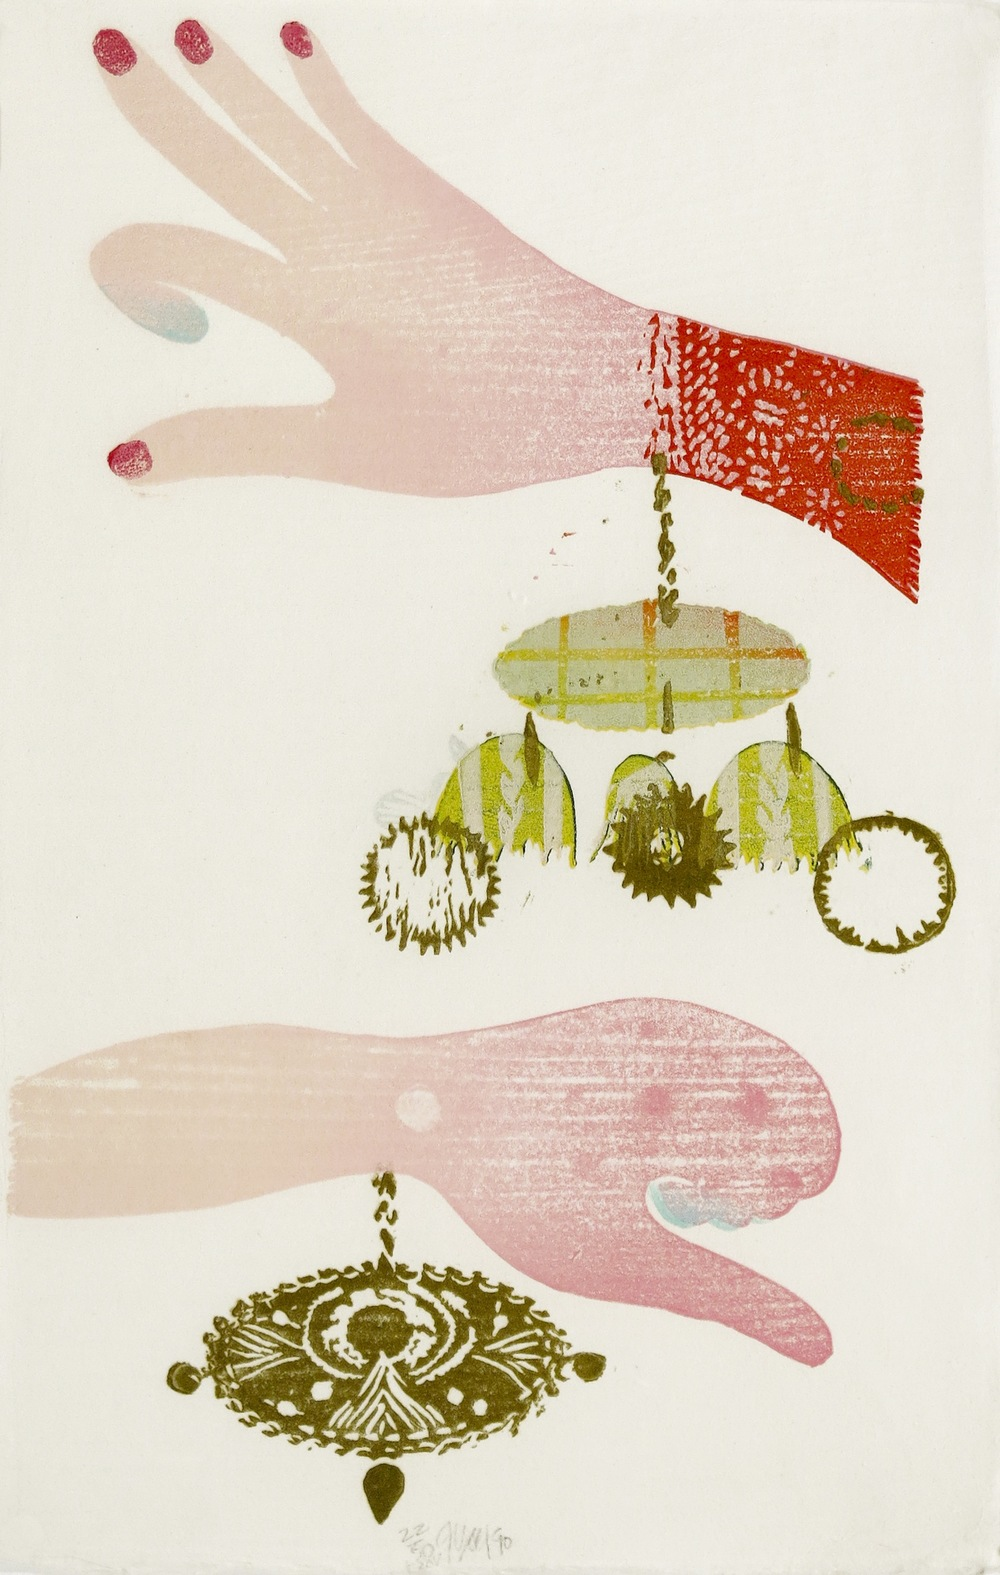 JULIE VOYCE Untitled , 1990 Linocut on rice paper with printed slip sheet